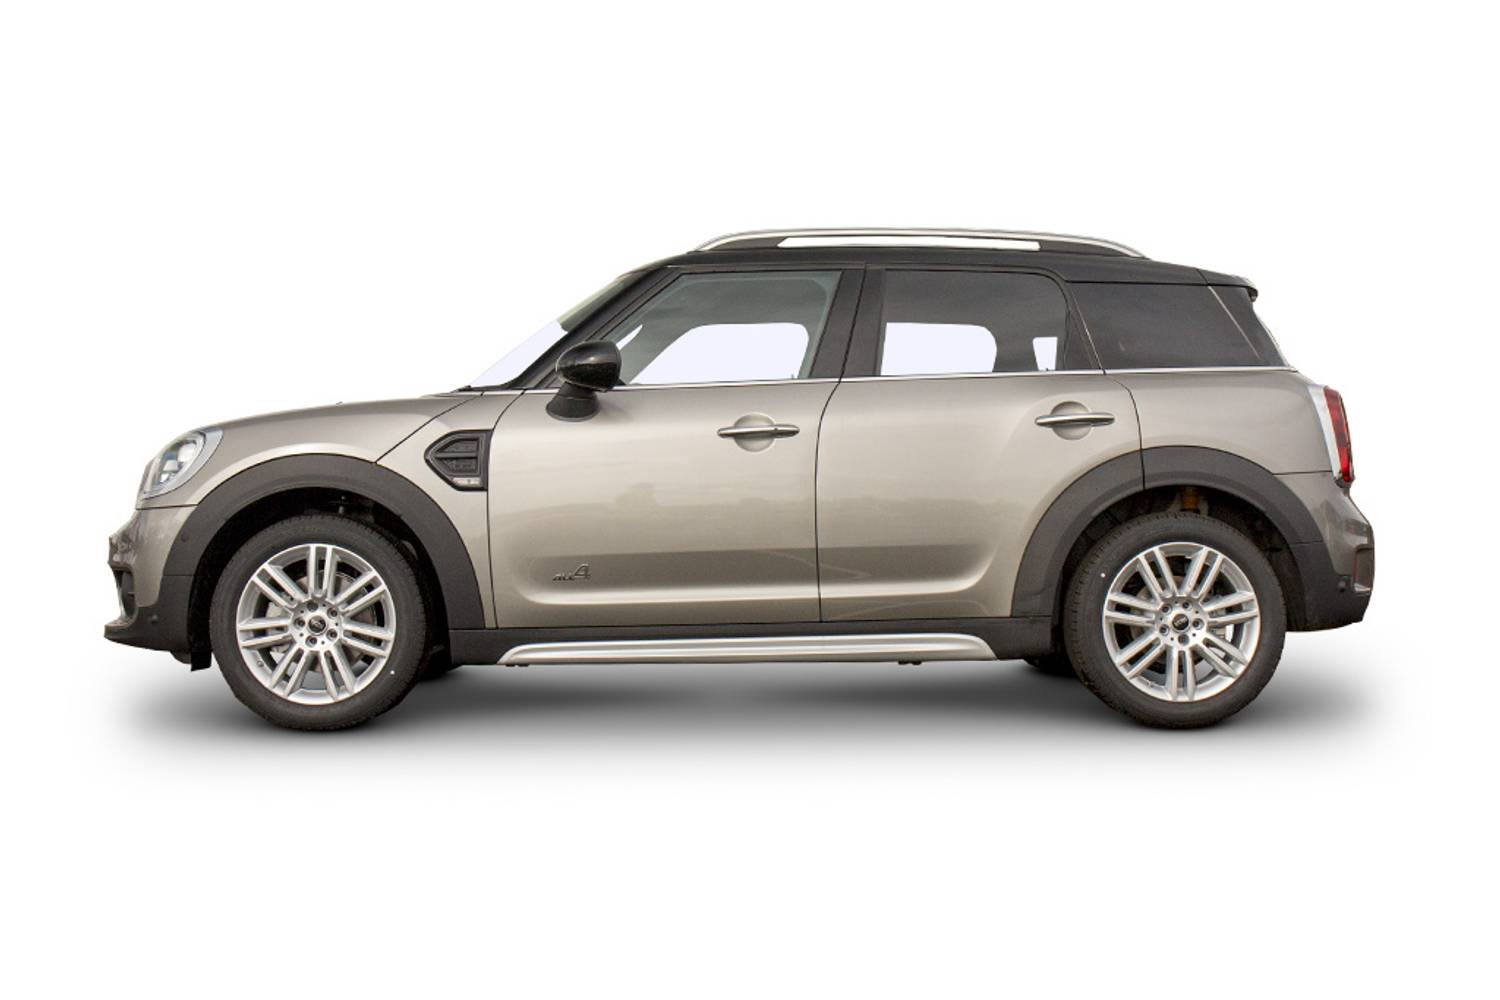 new mini countryman hatchback 1 5 cooper s e all4 phev 5 door auto tech chili 2017 for sale. Black Bedroom Furniture Sets. Home Design Ideas